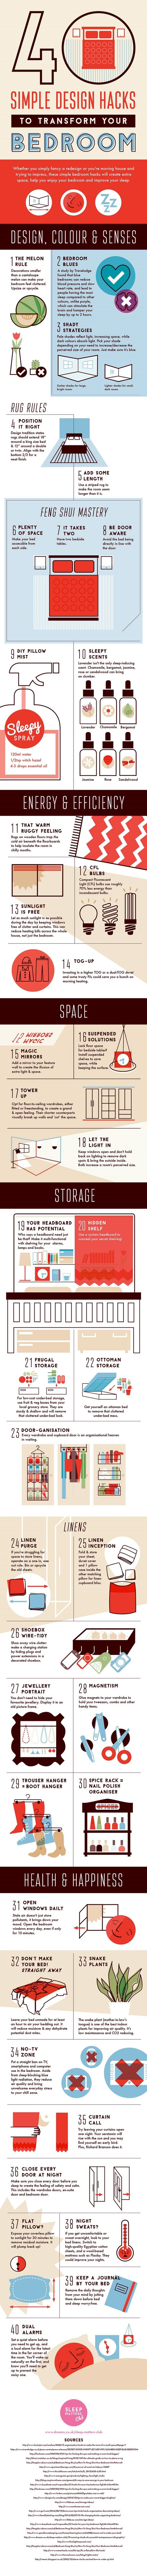 Best 20+ Are you bored ideas on Pinterest | Help im bored, Bored ...